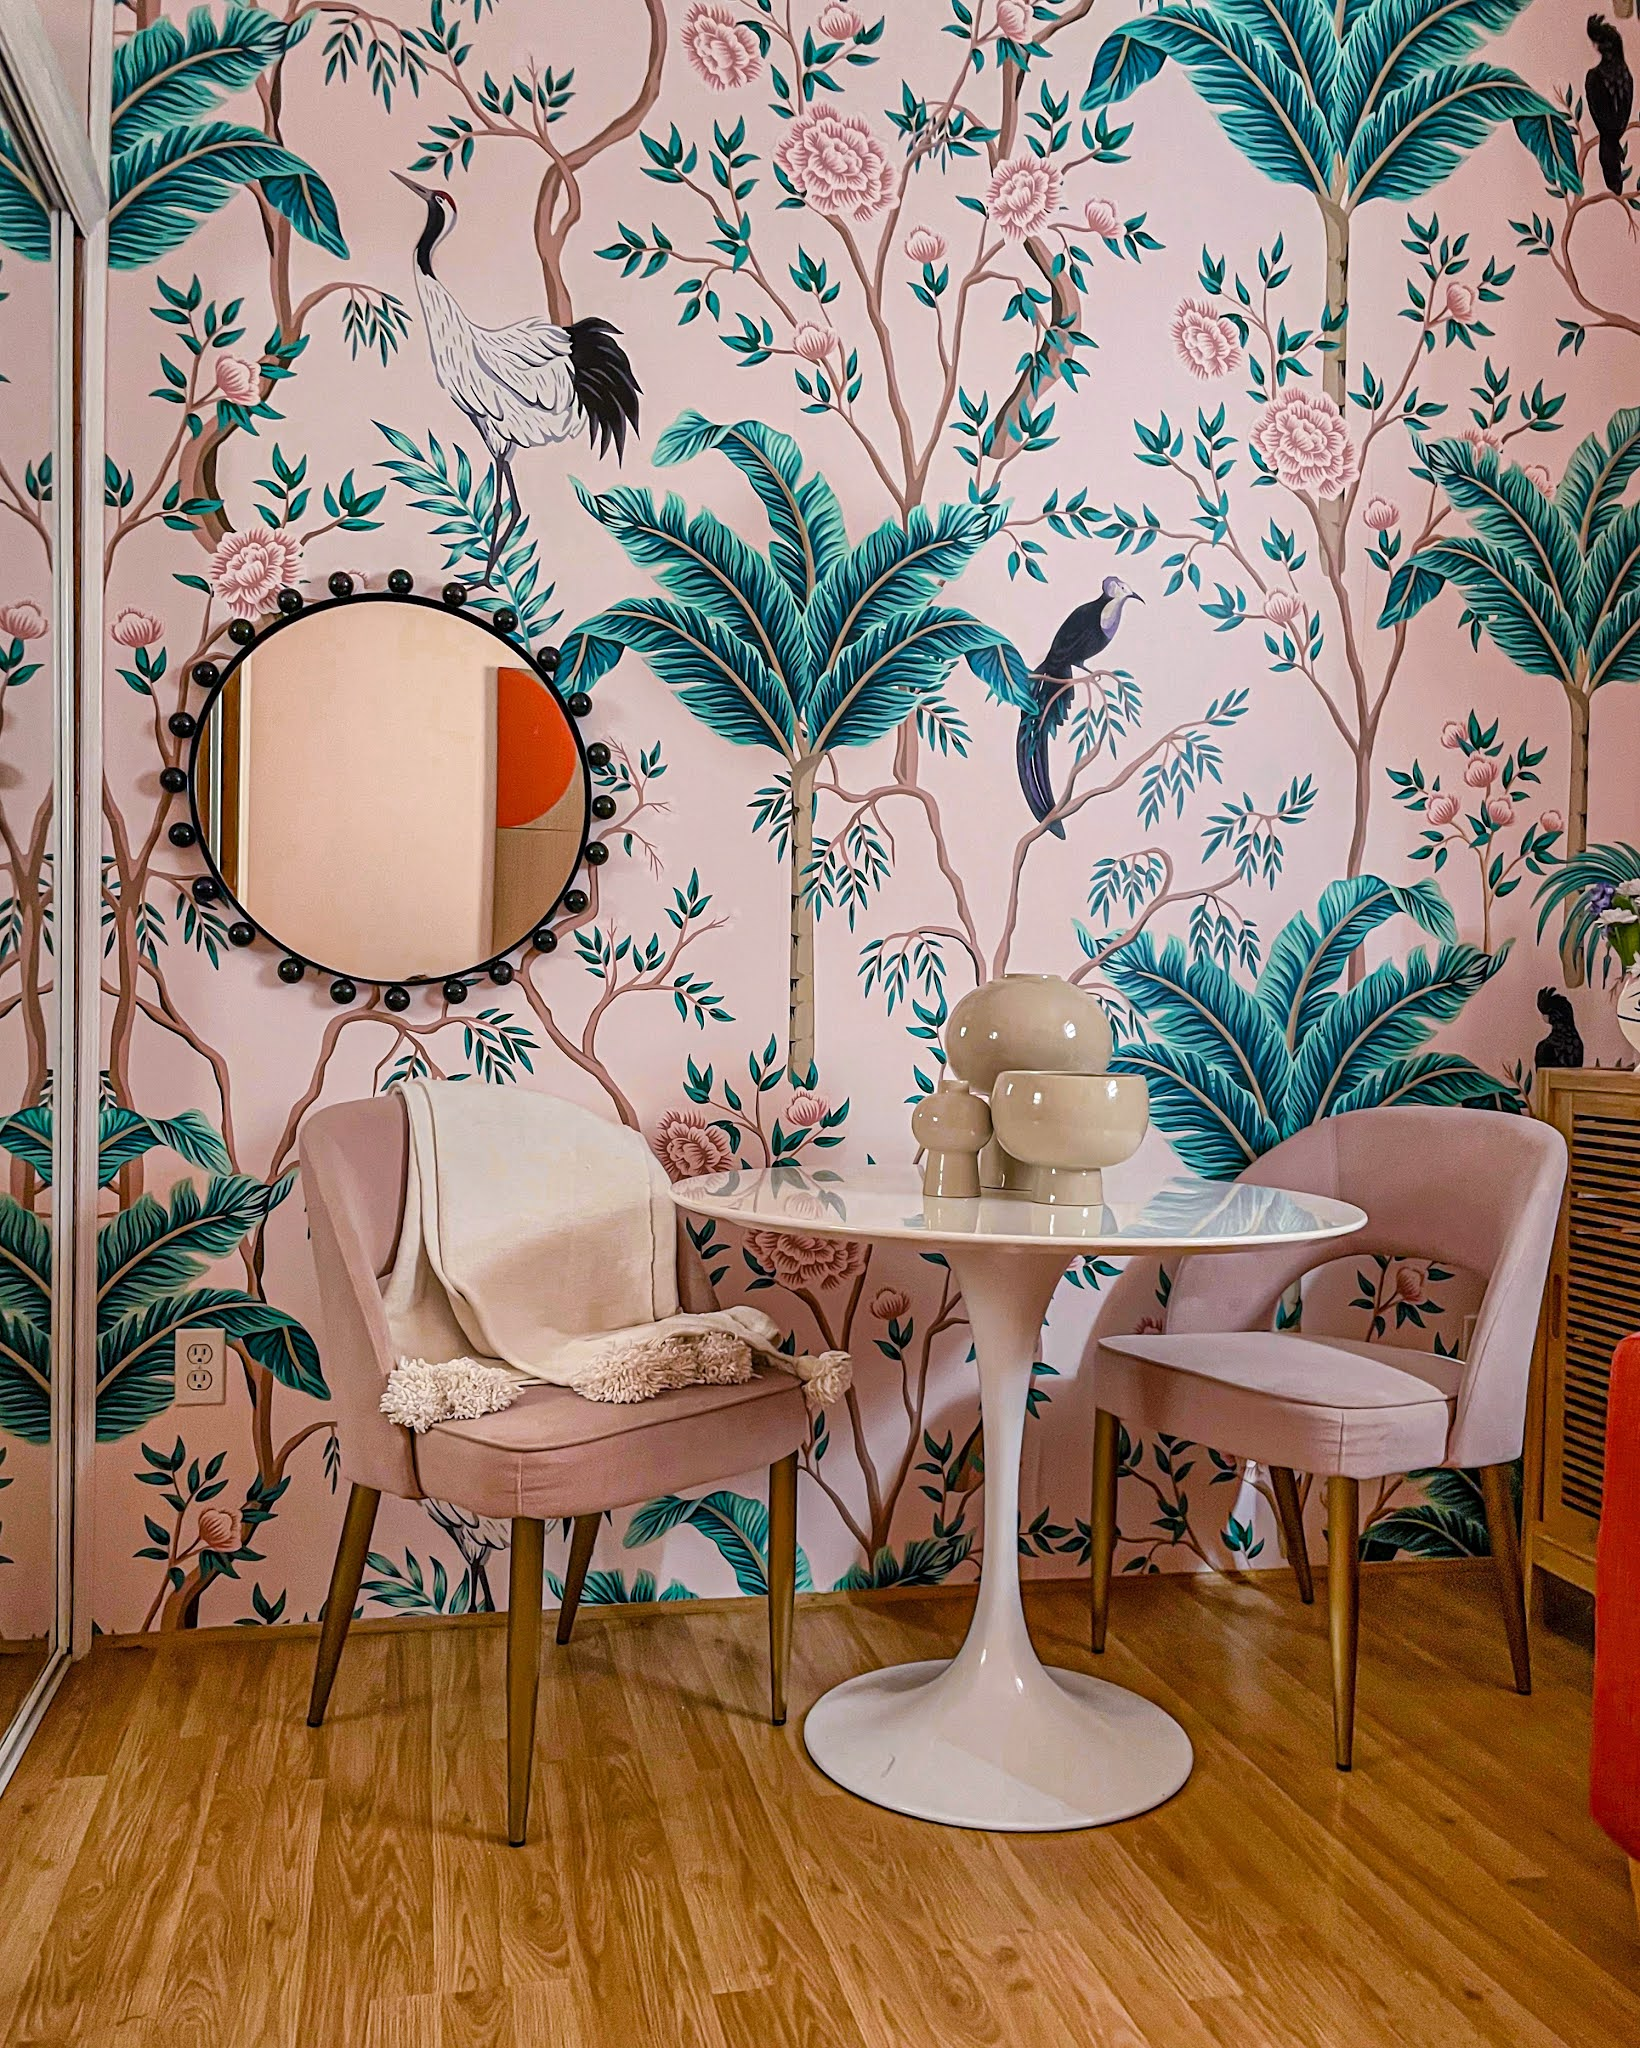 removable wallpaper // limitless walls // tropical wallpapers // pink wallpaper // wallpaper inspo // pink office // pink rooms // tropical office ideas //